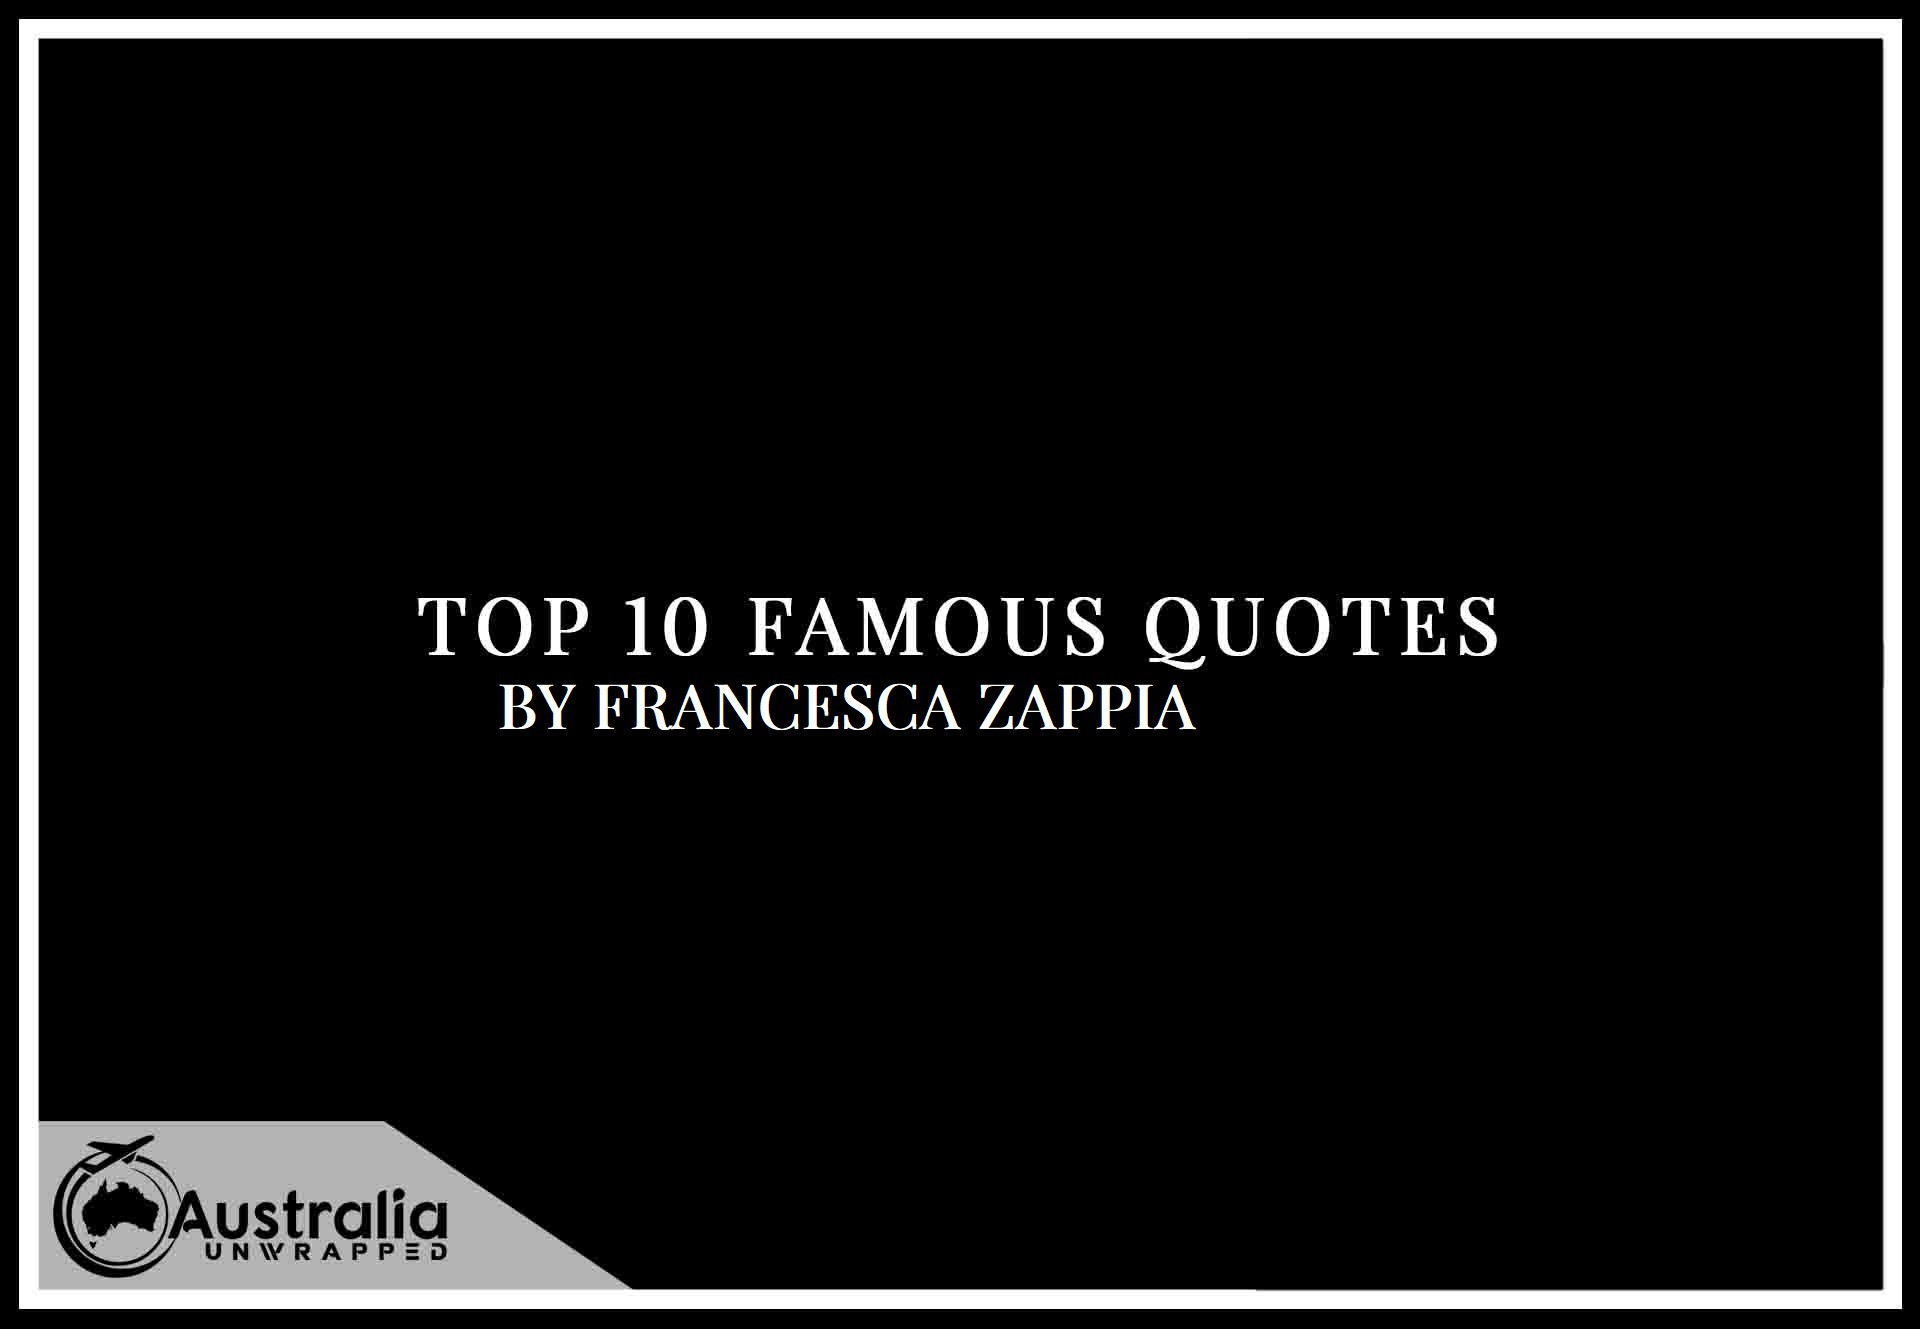 Top 10 Famous Quotes by Author Francesca Zappia